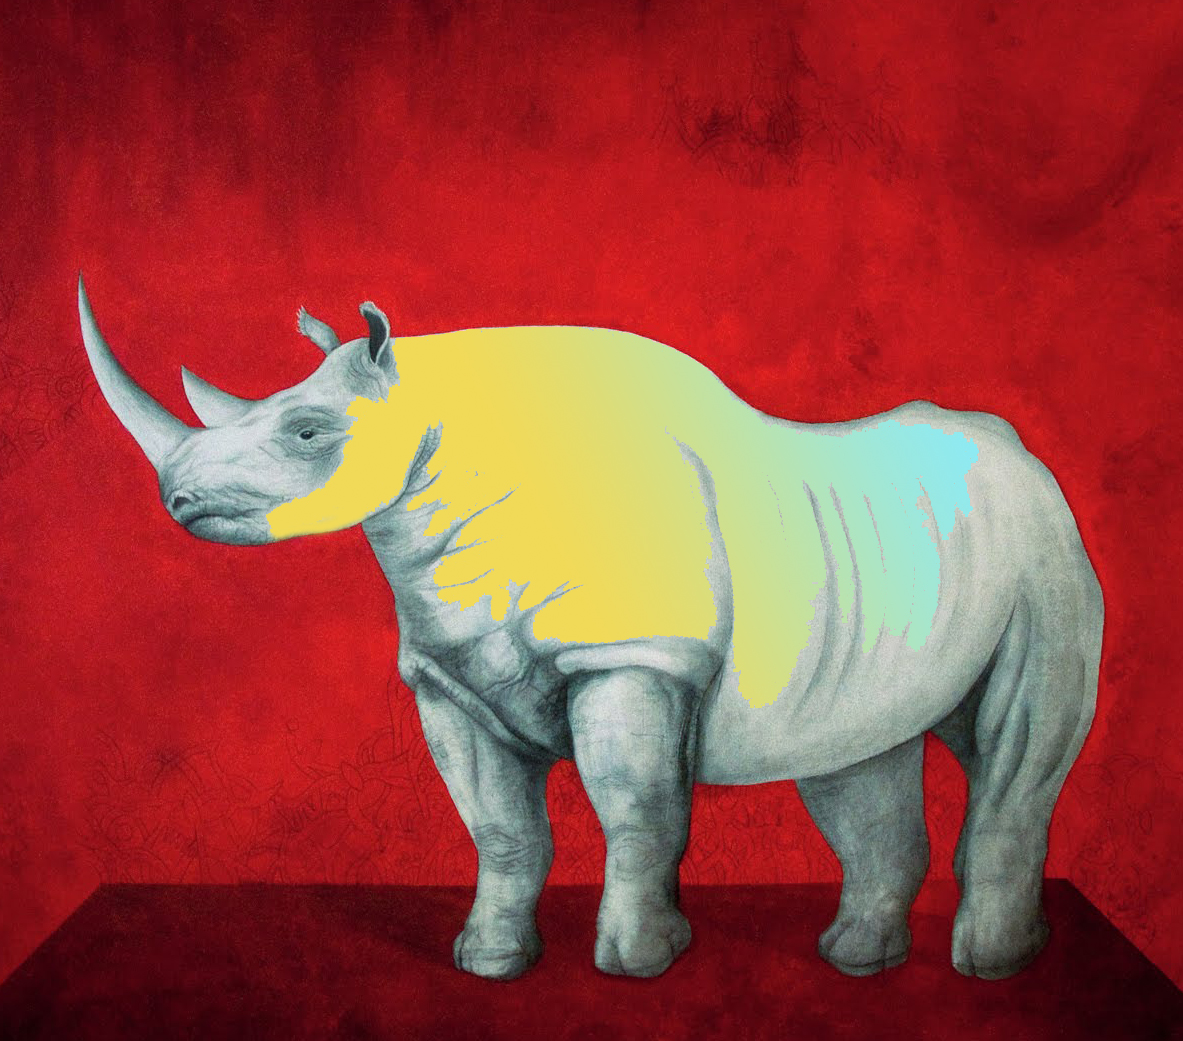 the-white-rhino-by-antonio-guerrero-contemporary-cuban-artist-arte-cubano-cuban-art-cuban-master-contemporary-art-2